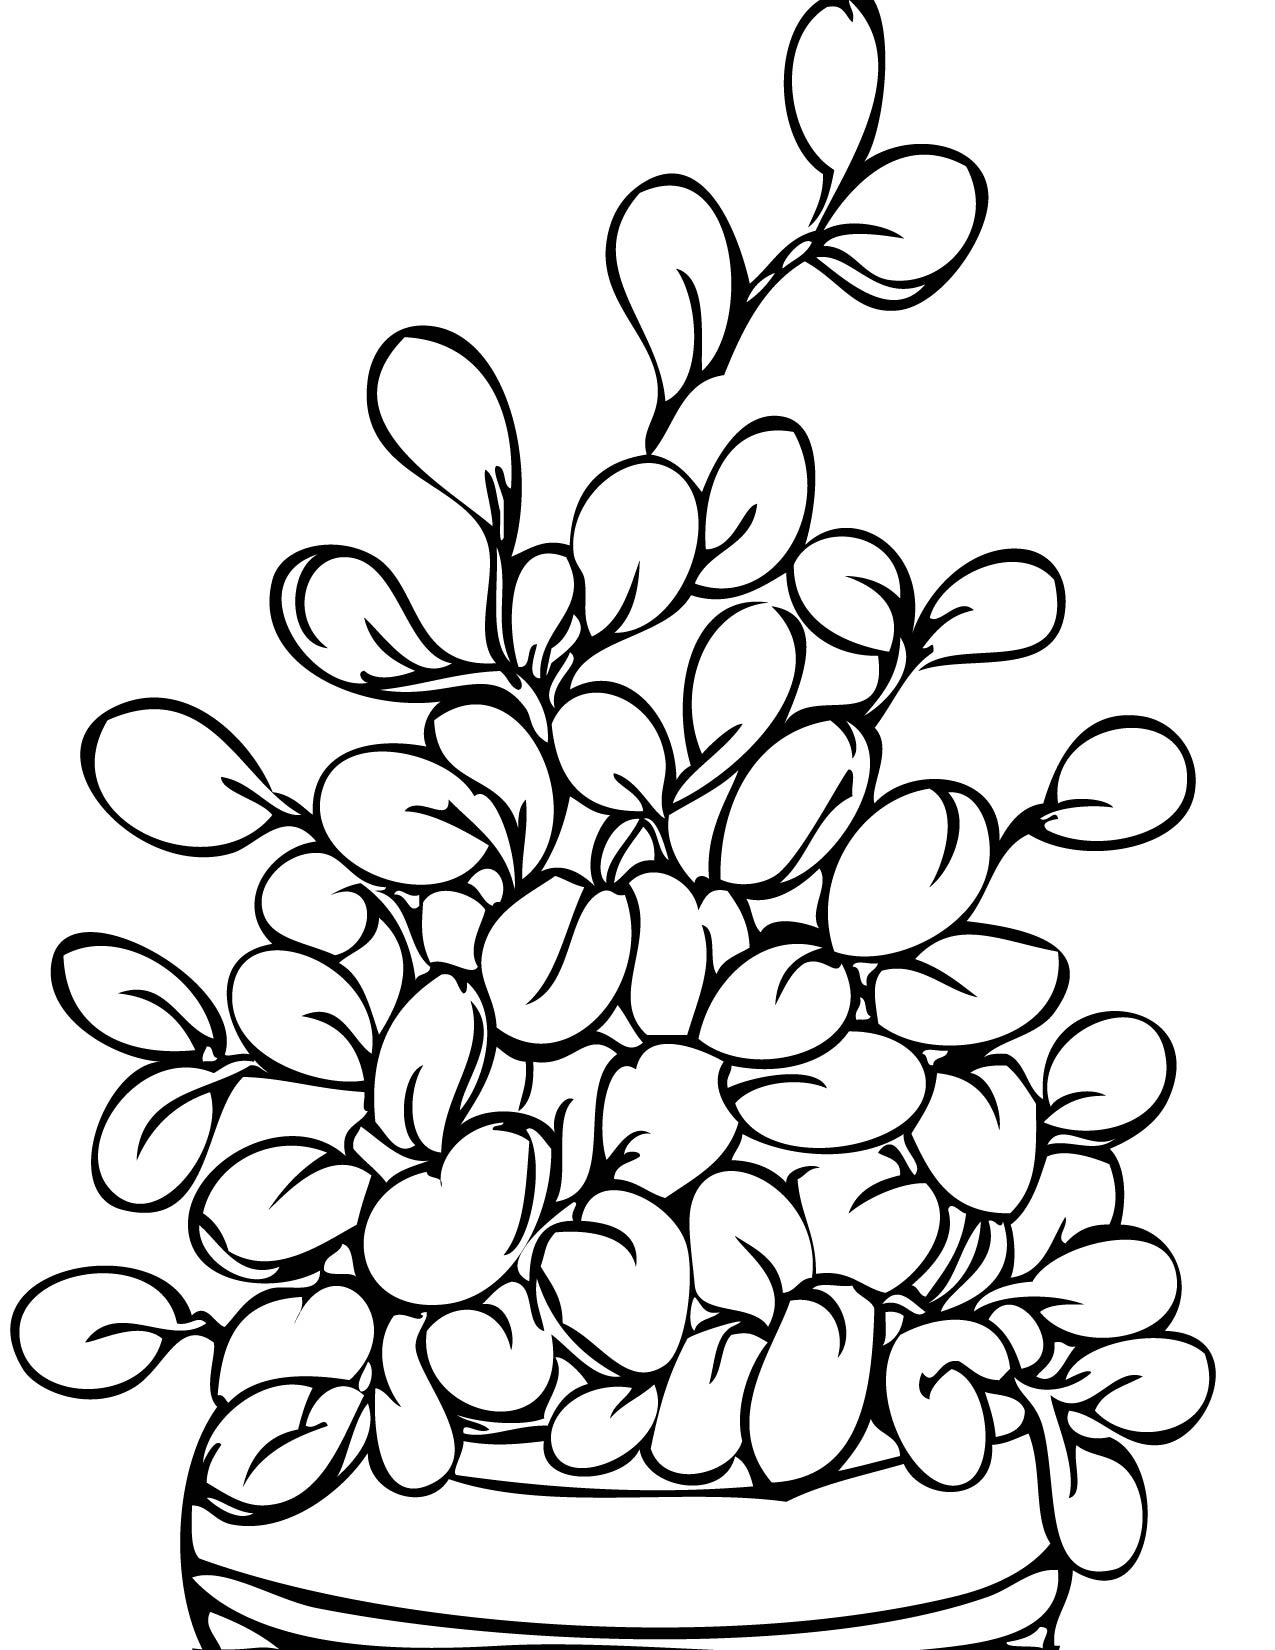 Jade Plant Coloring Page - Handipoints